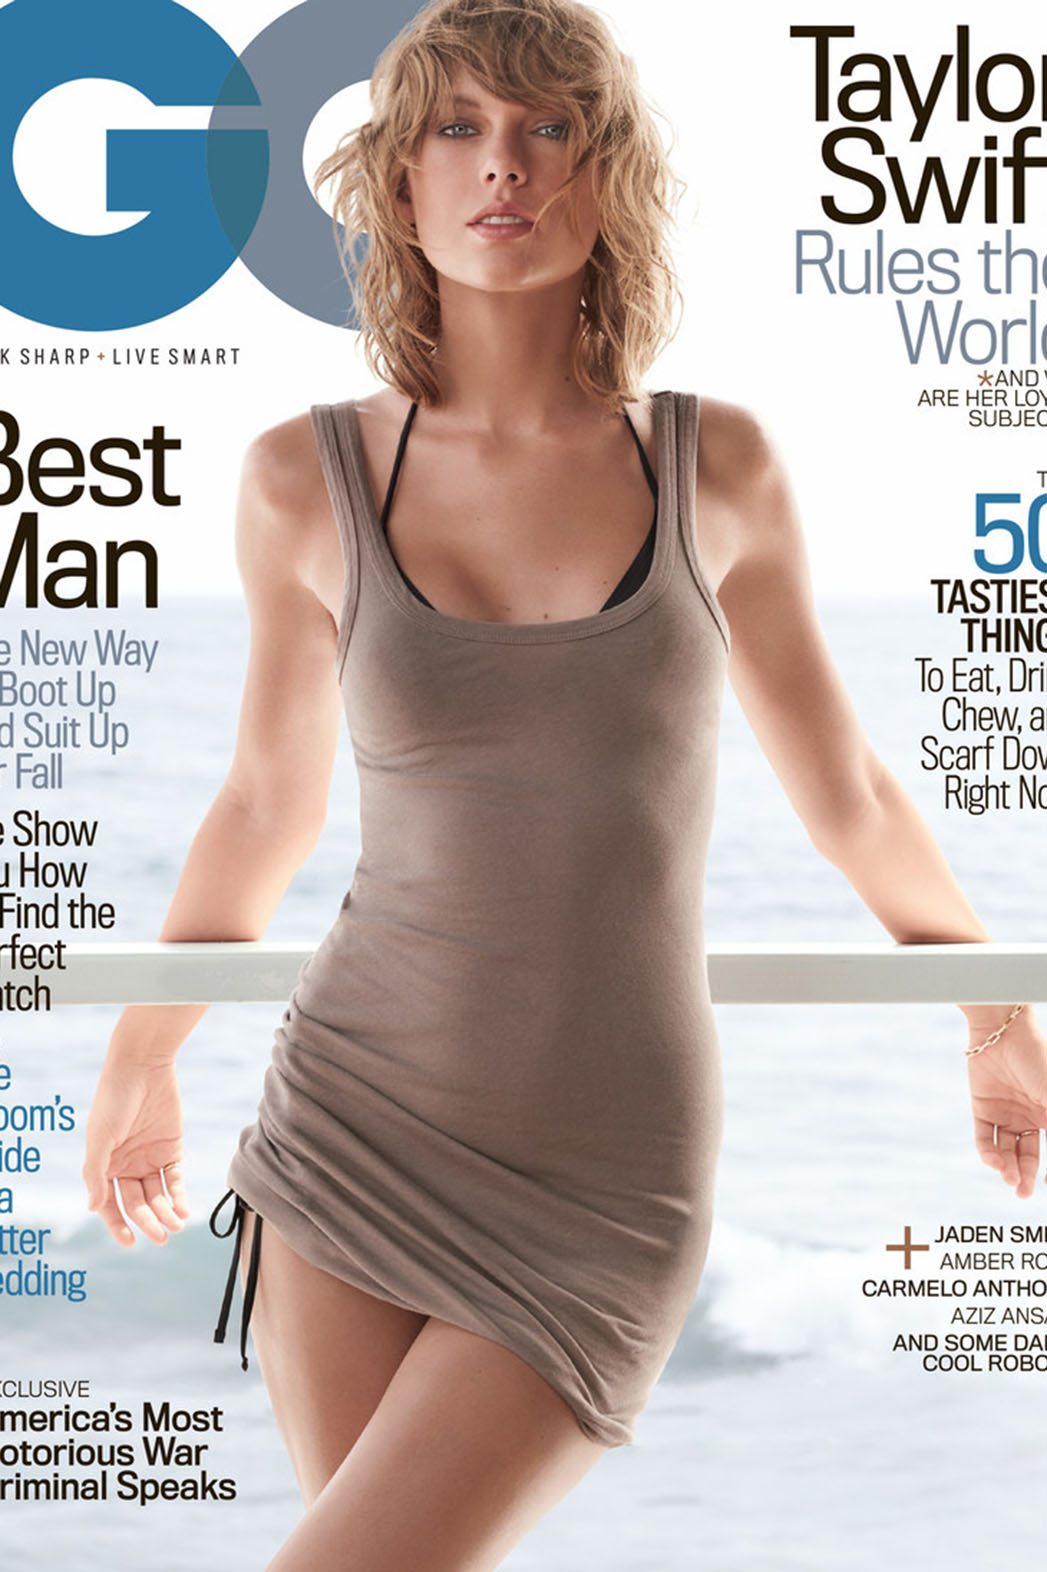 Taylor Swift GQ cover - P 2015